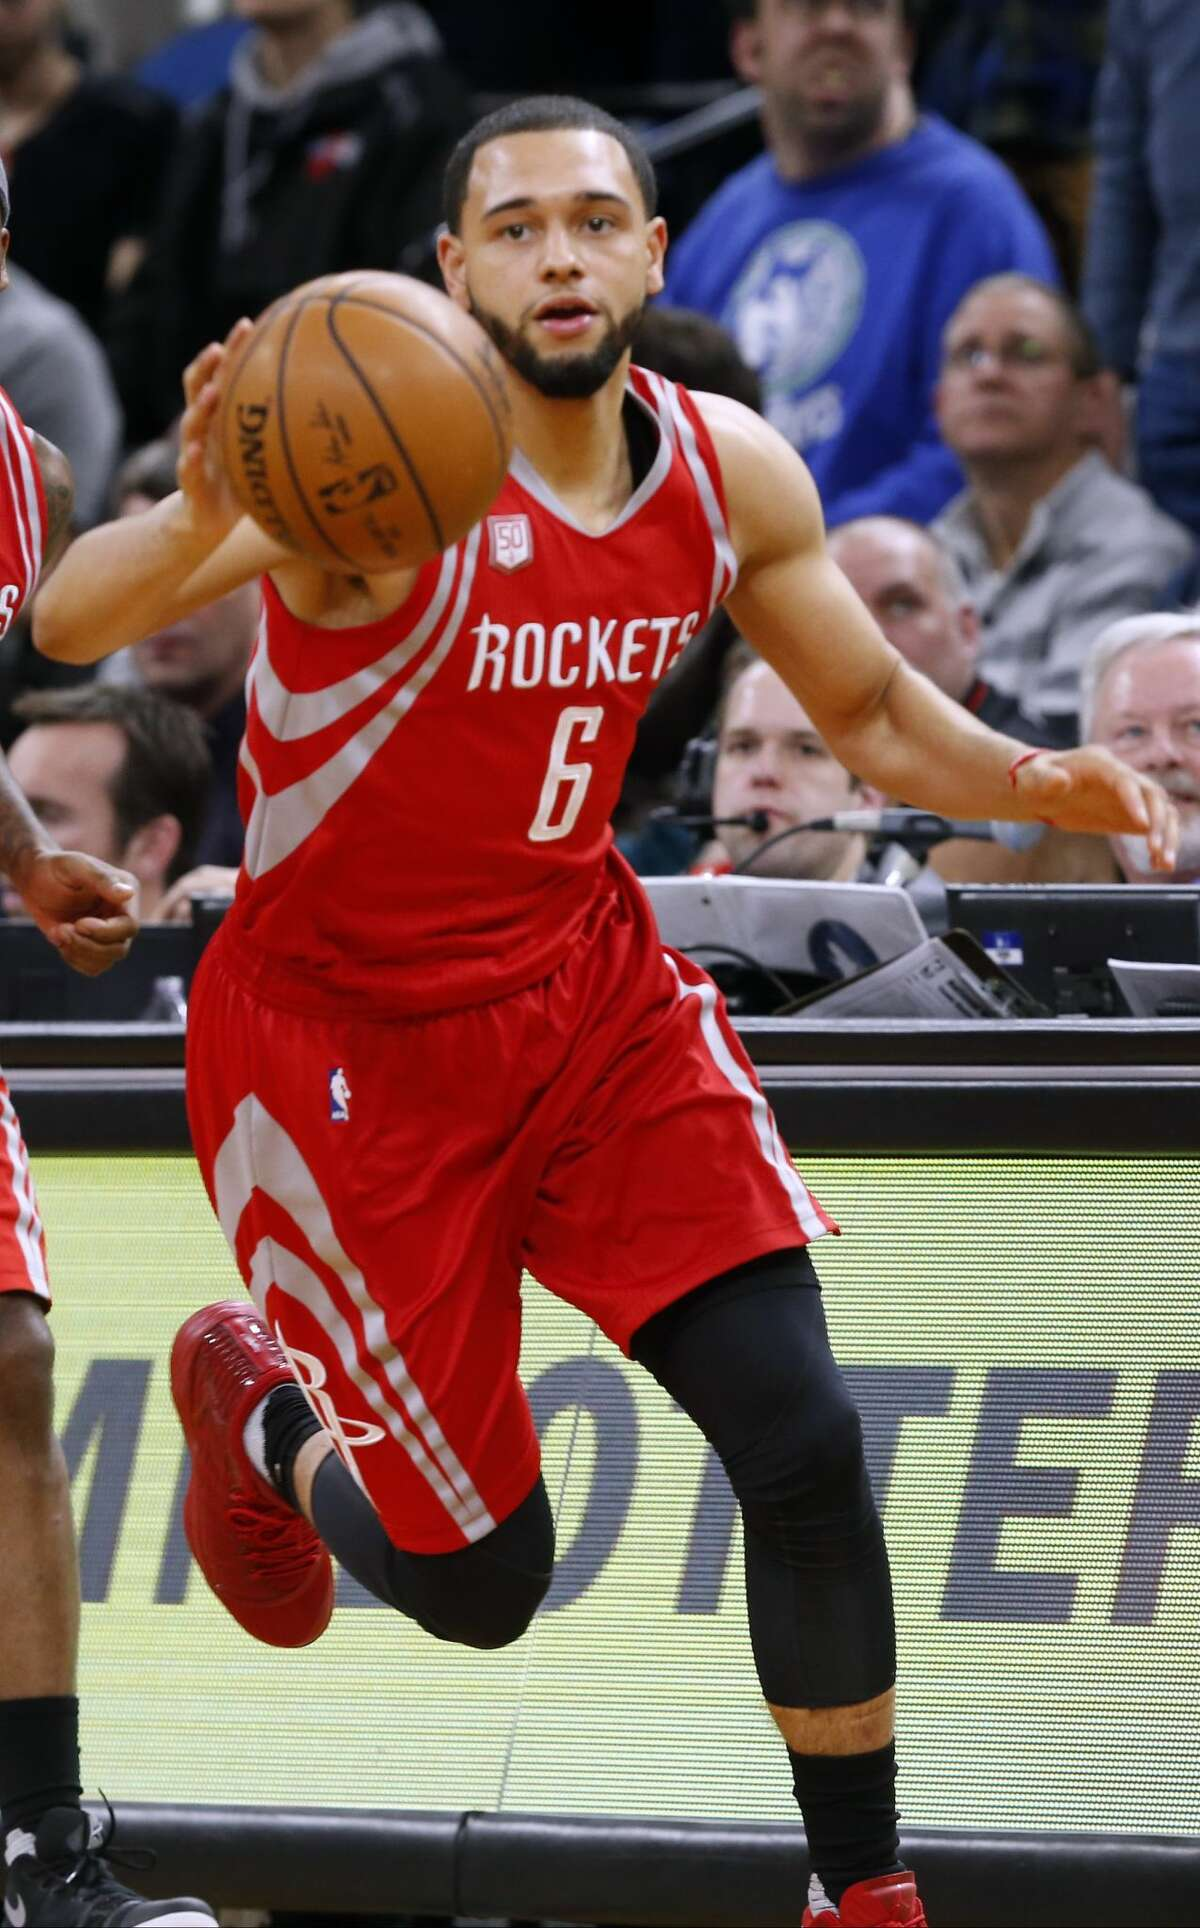 The Rockets send Tyler Ennis to the Lakers for Marcelo Huertas Rockets grade: A Same as the McDaniels trade. Ennis wasn't getting any playing time, and getting rid of him frees up cap space to go after someone who gets bought out of his contract. The Rockets plan to release Huertas. Lakers grade: B Is Ennis any better than Huertas? Maybe? Ennis is only 22, so he definitely has more upside.